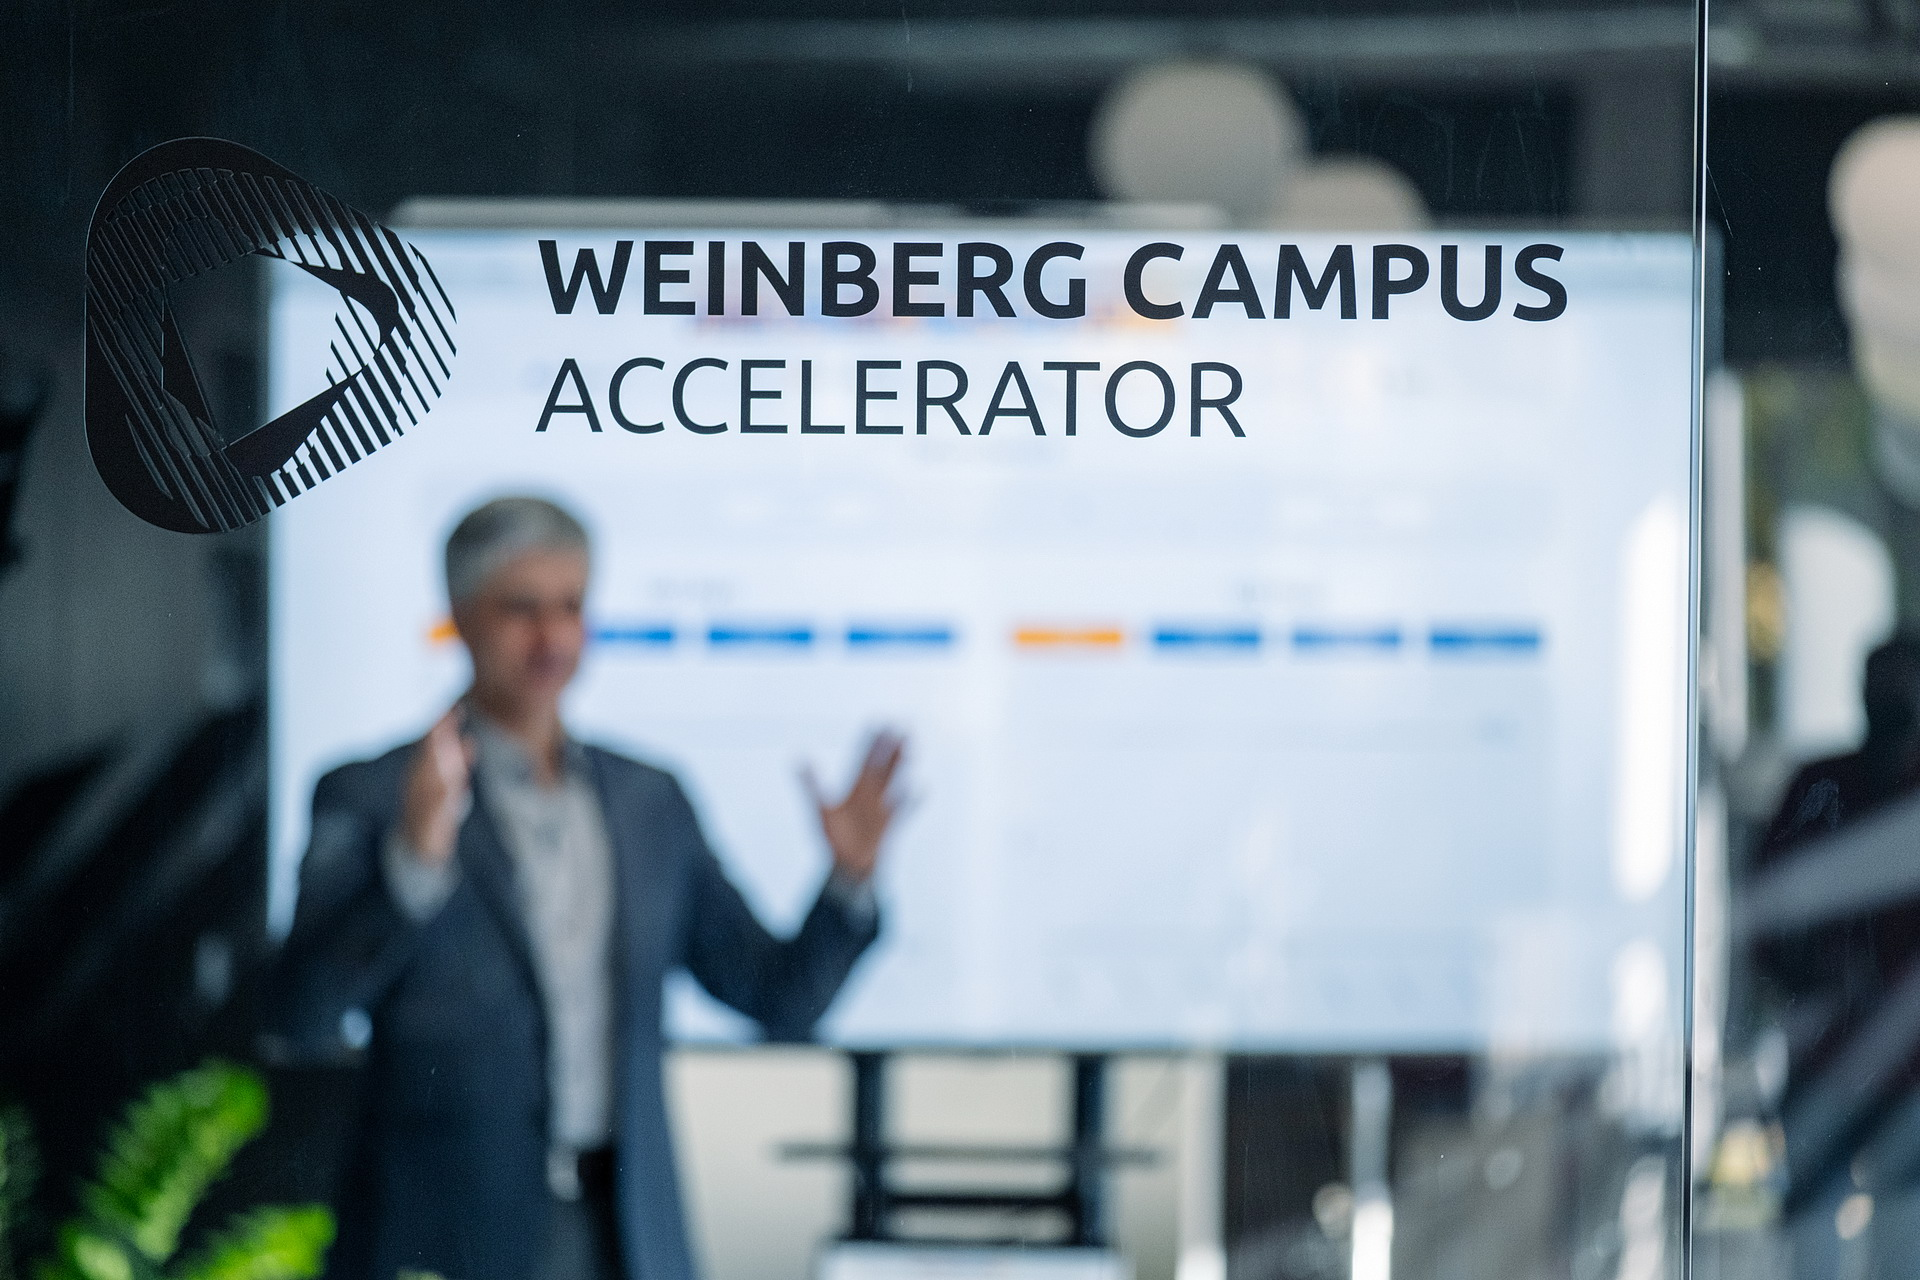 8 weeks after the start of the Weinberg Campus Accelerator